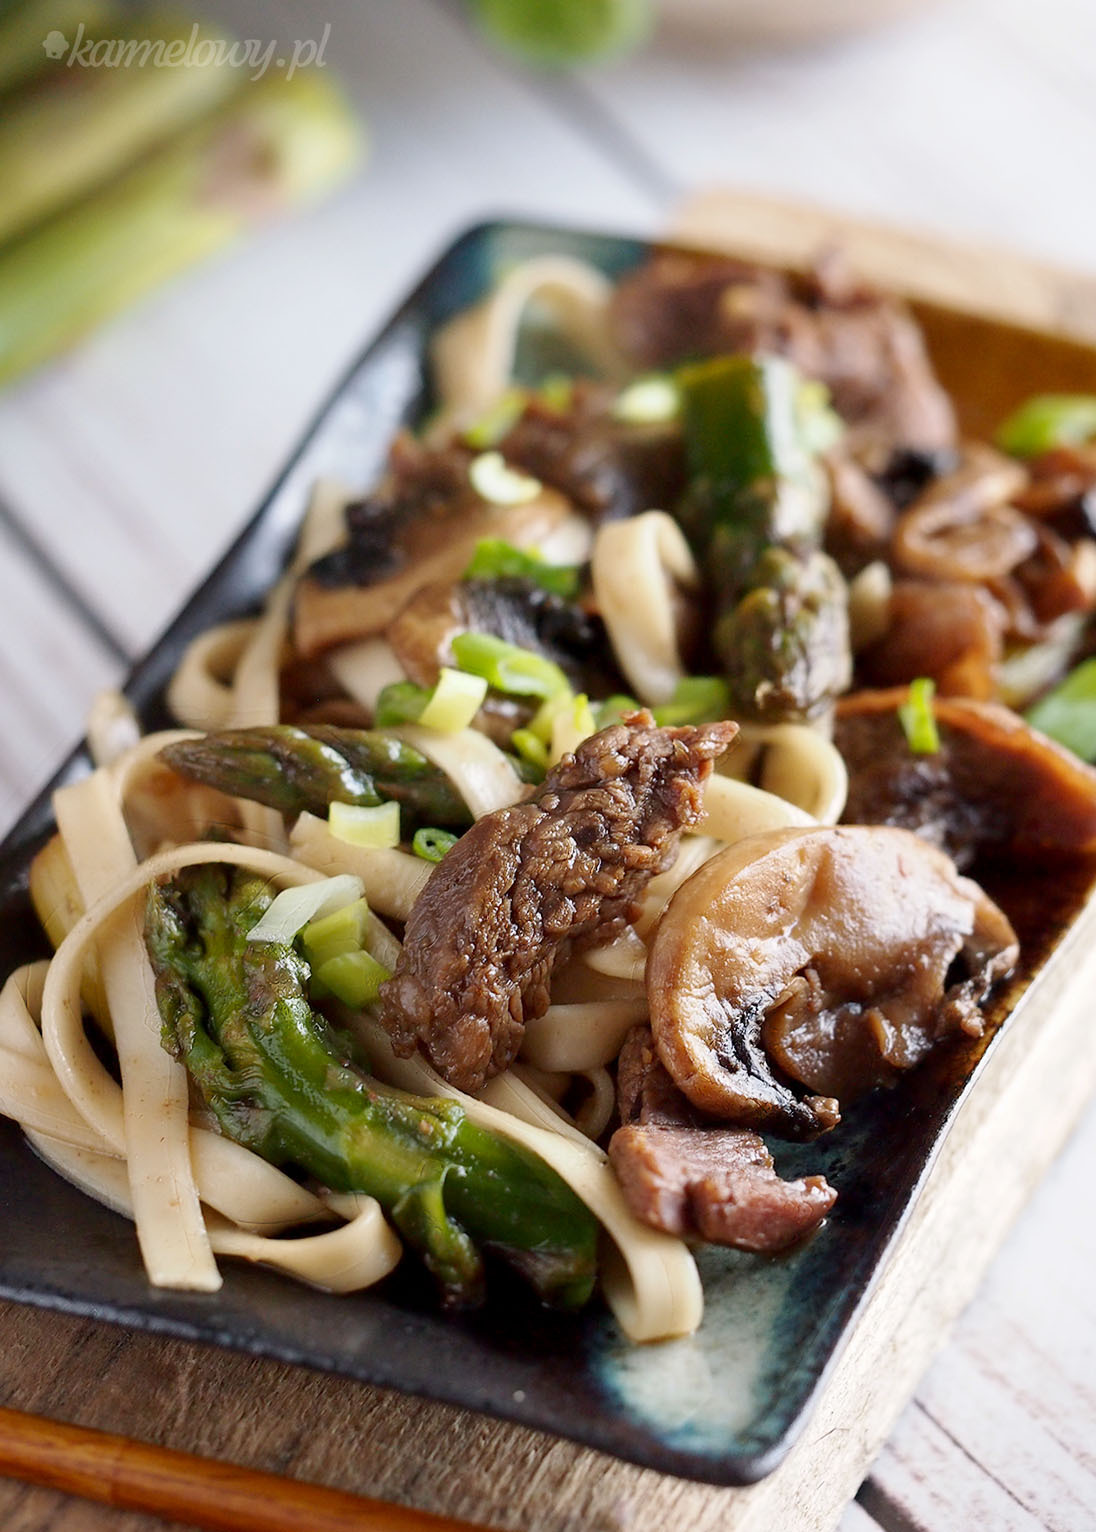 Łatwy stek teriyaki z grzybami i szparagami / Easy teriyaki steak with mushrooms and asparagus